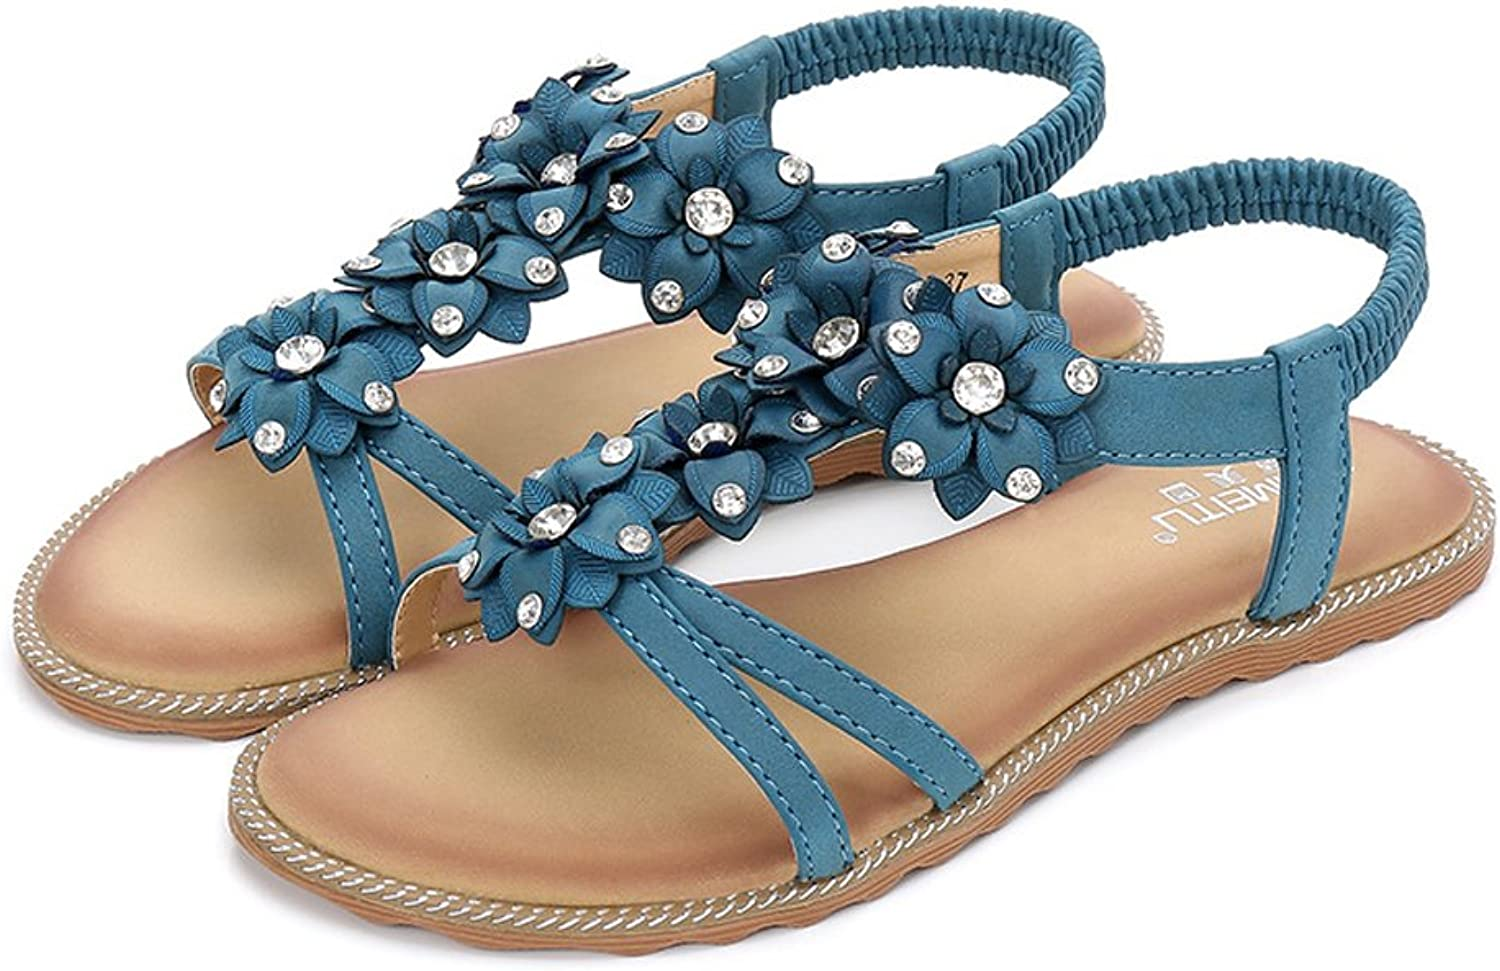 Tuoup Women's Flat Leather Jeweled Summer Sandles Sandals